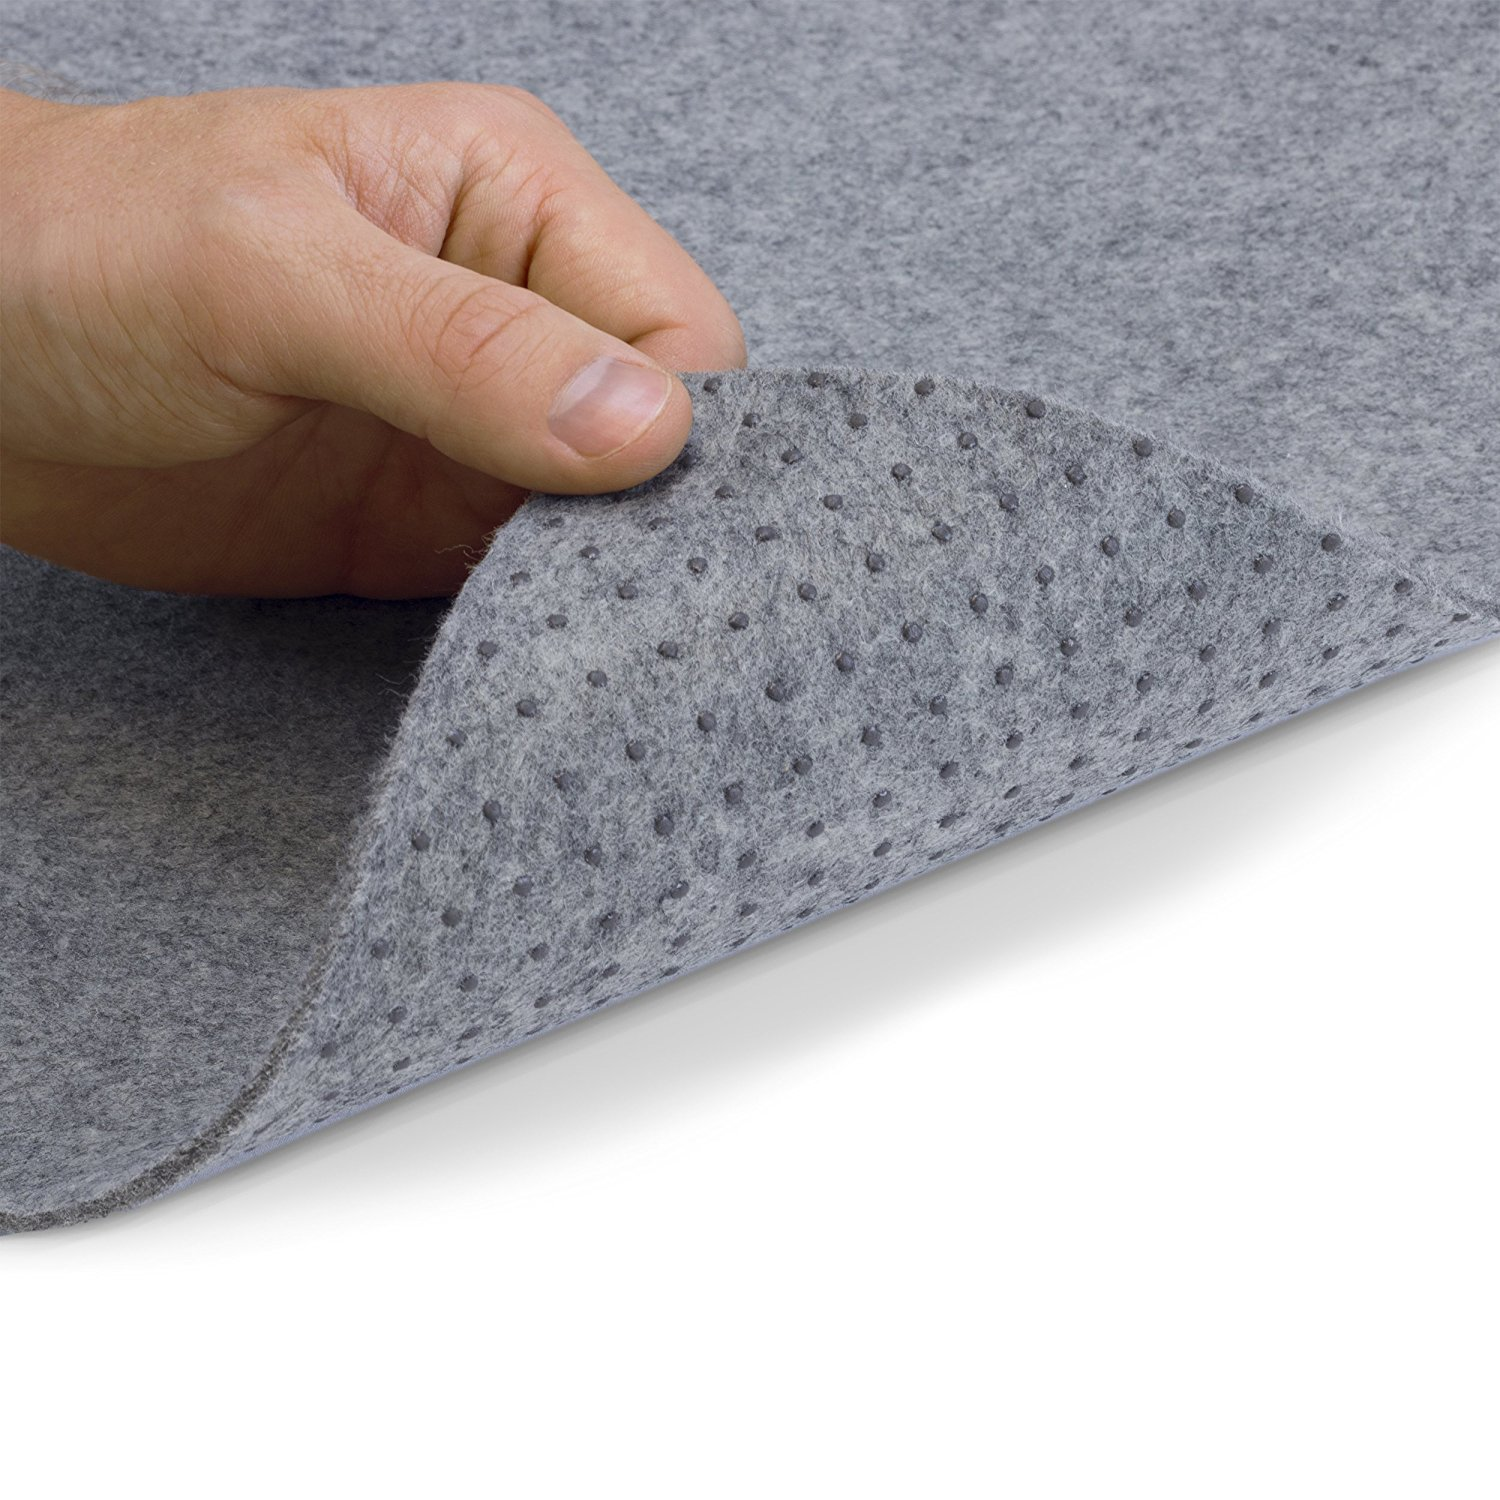 Alpine Neighbor Area Rug Pad with GRIP TIGHT Technology (5x8) | Non Slip Padding Perfect for Hardwood Floors | Thick Felt Cushion for Rugs Nonskid Kitchen Persian Carpet Mat Natural Grey by Alpine Neighbor (Image #2)